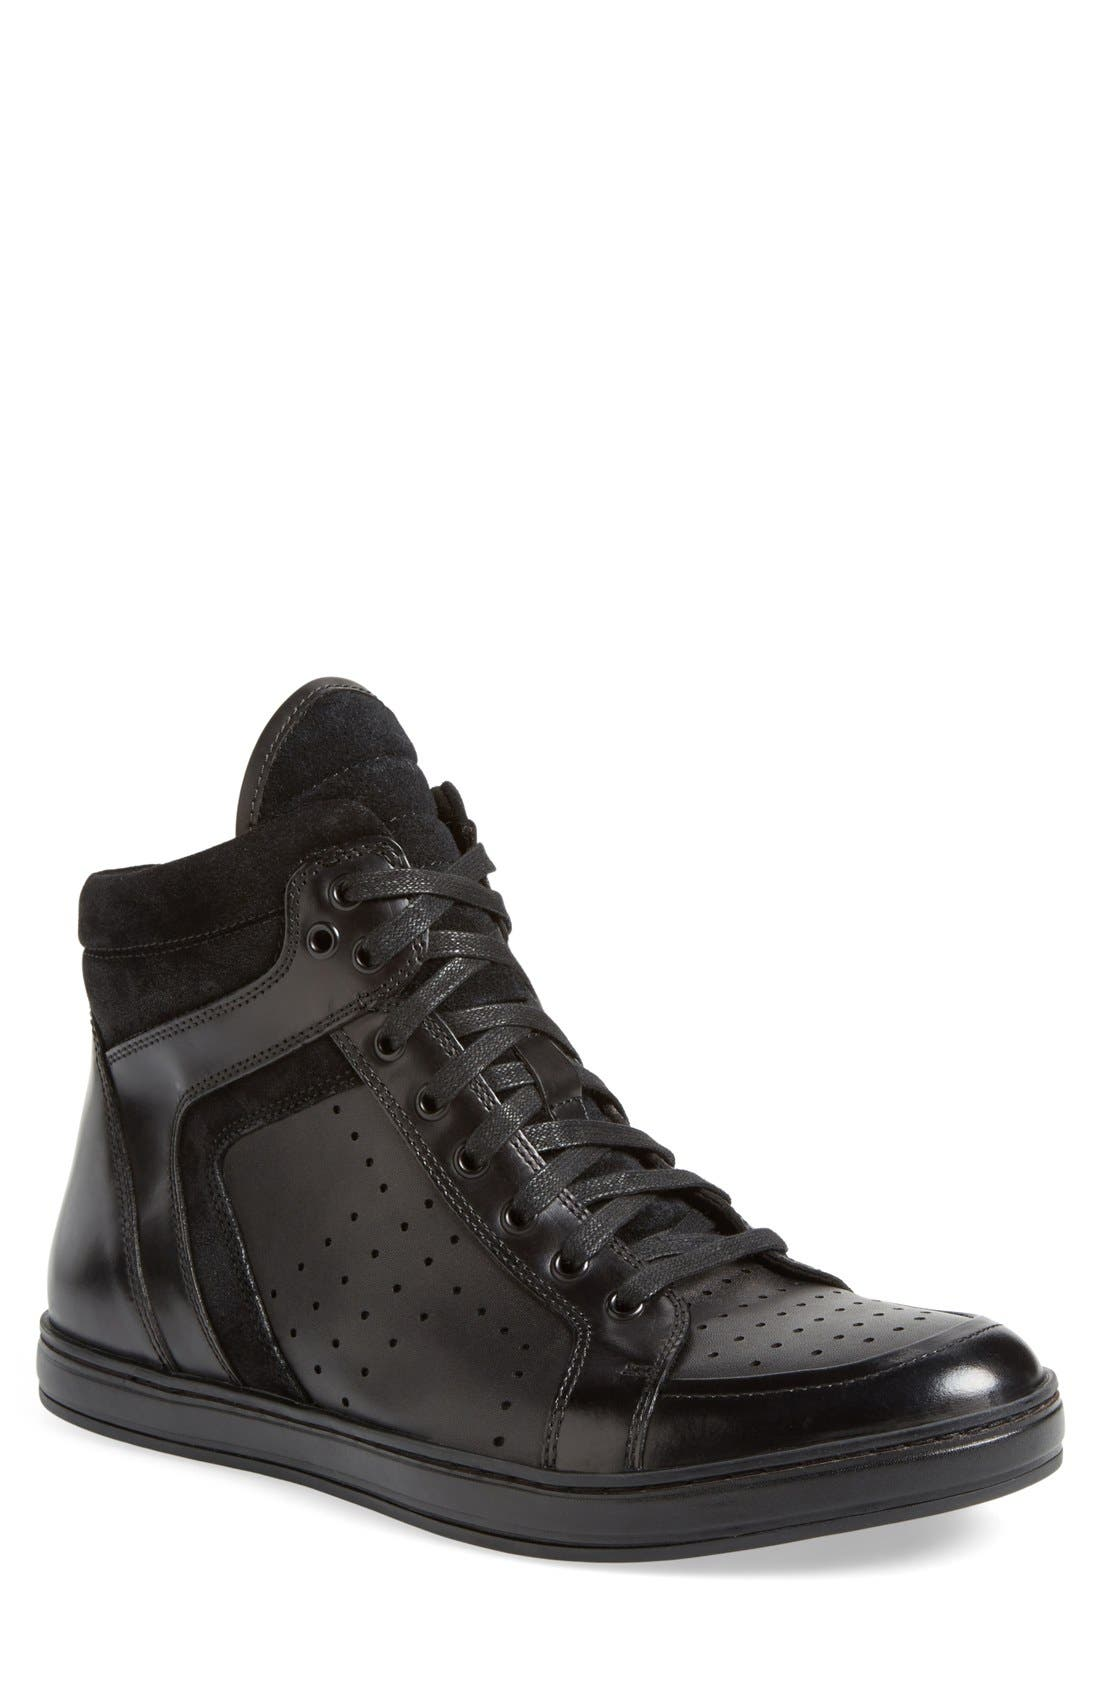 Main Image - Kenneth Cole New York 'Big Brand' Sneaker (Men)